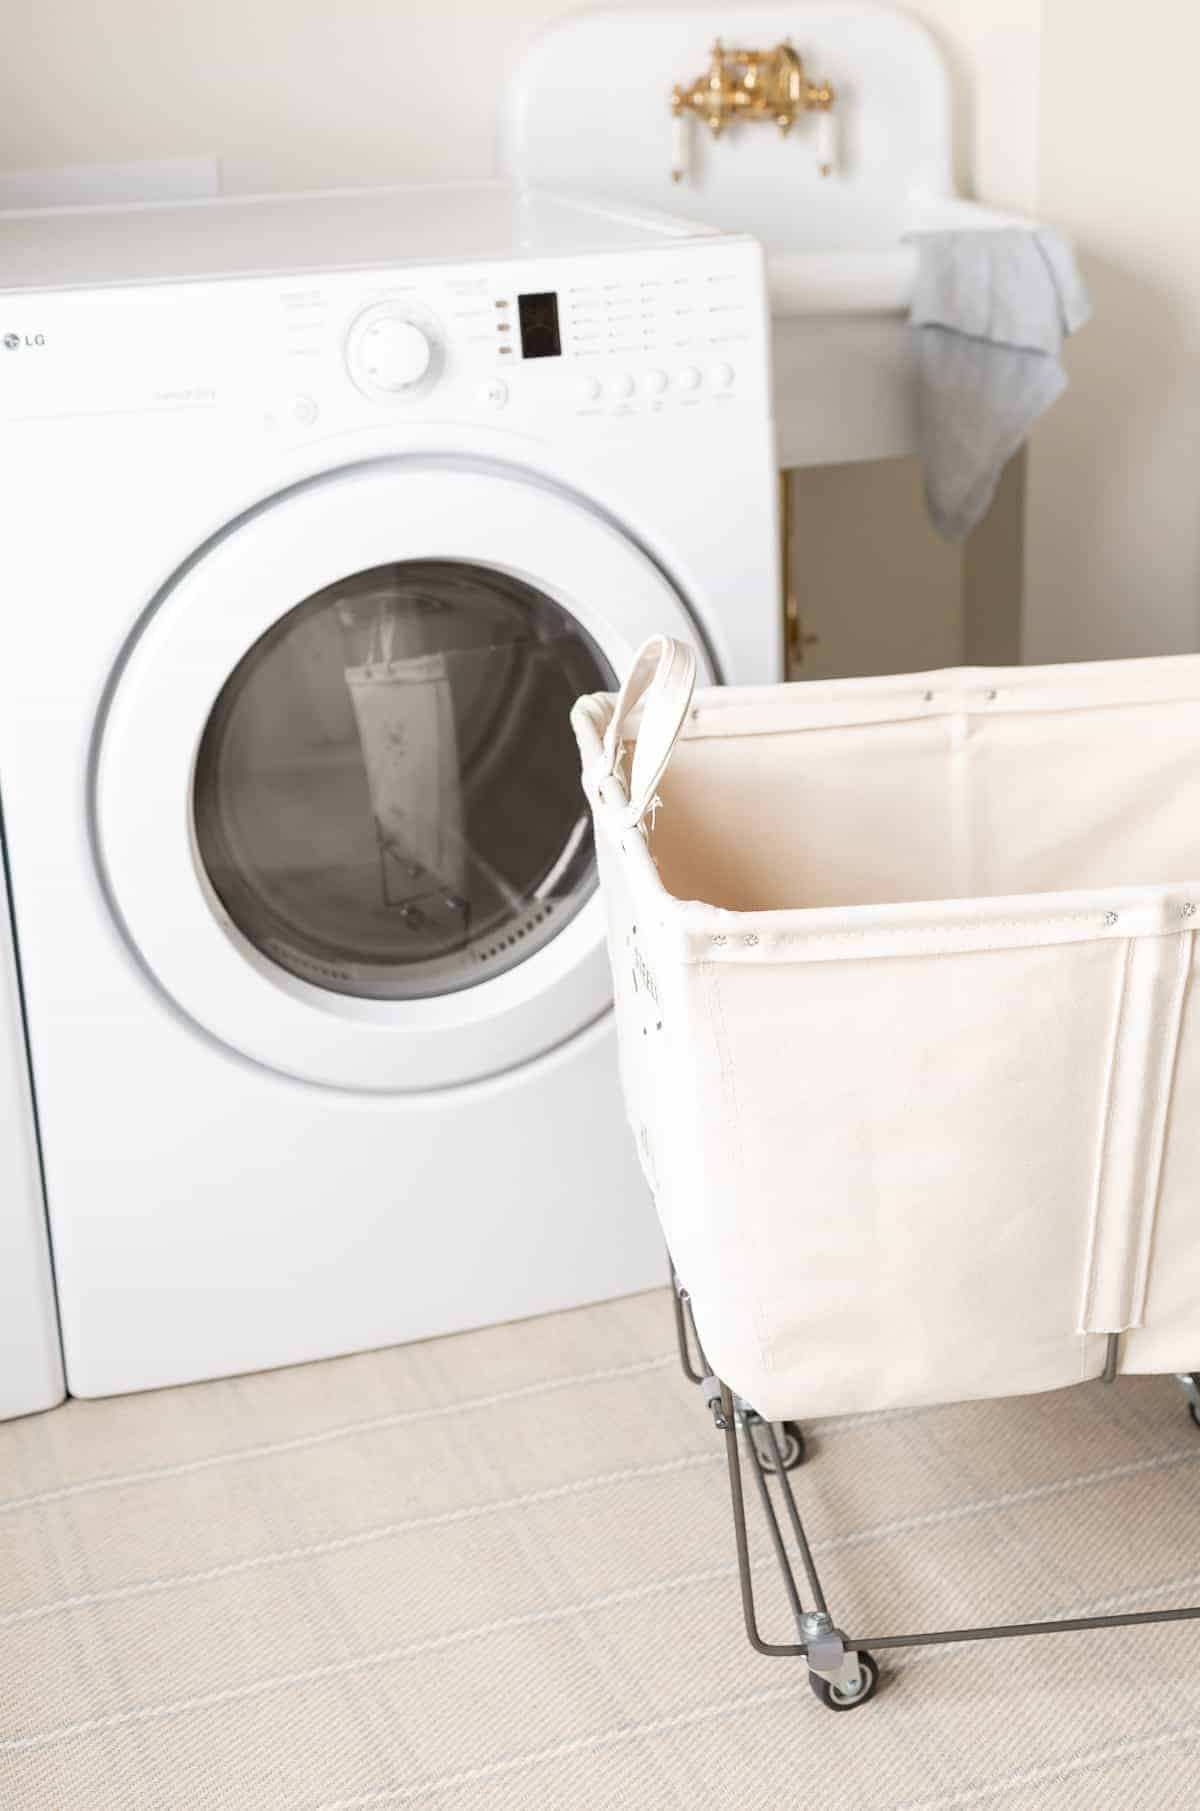 A rolling laundry basket with a washer and dryer in the background.